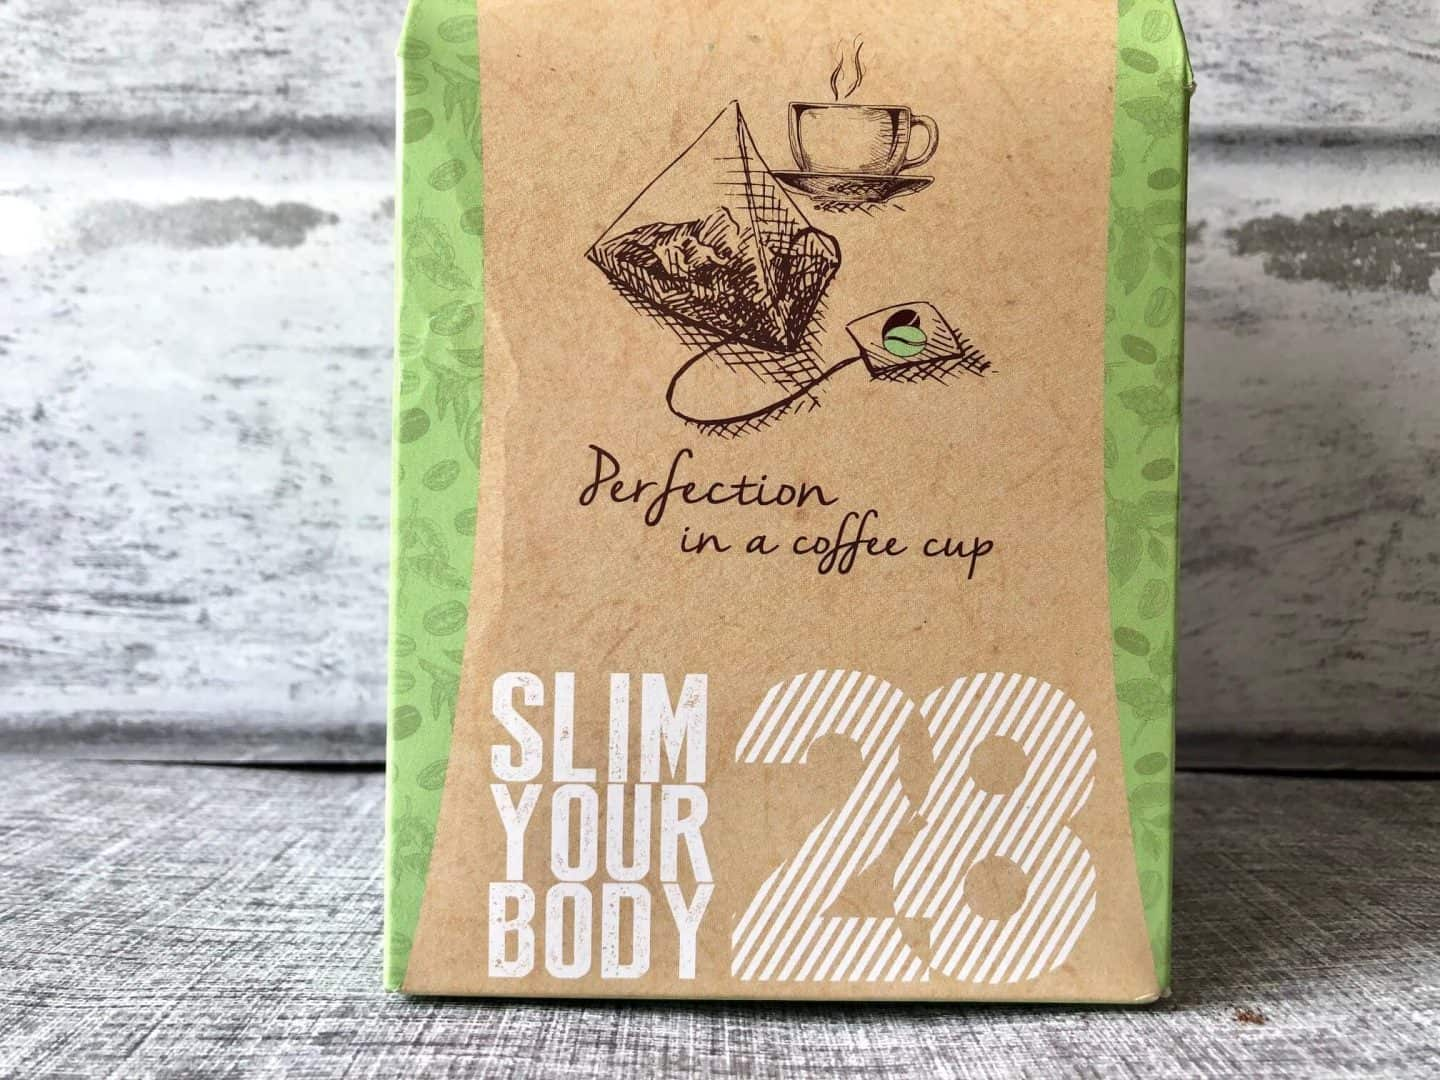 Pure Green Coffee Review and Giveaway